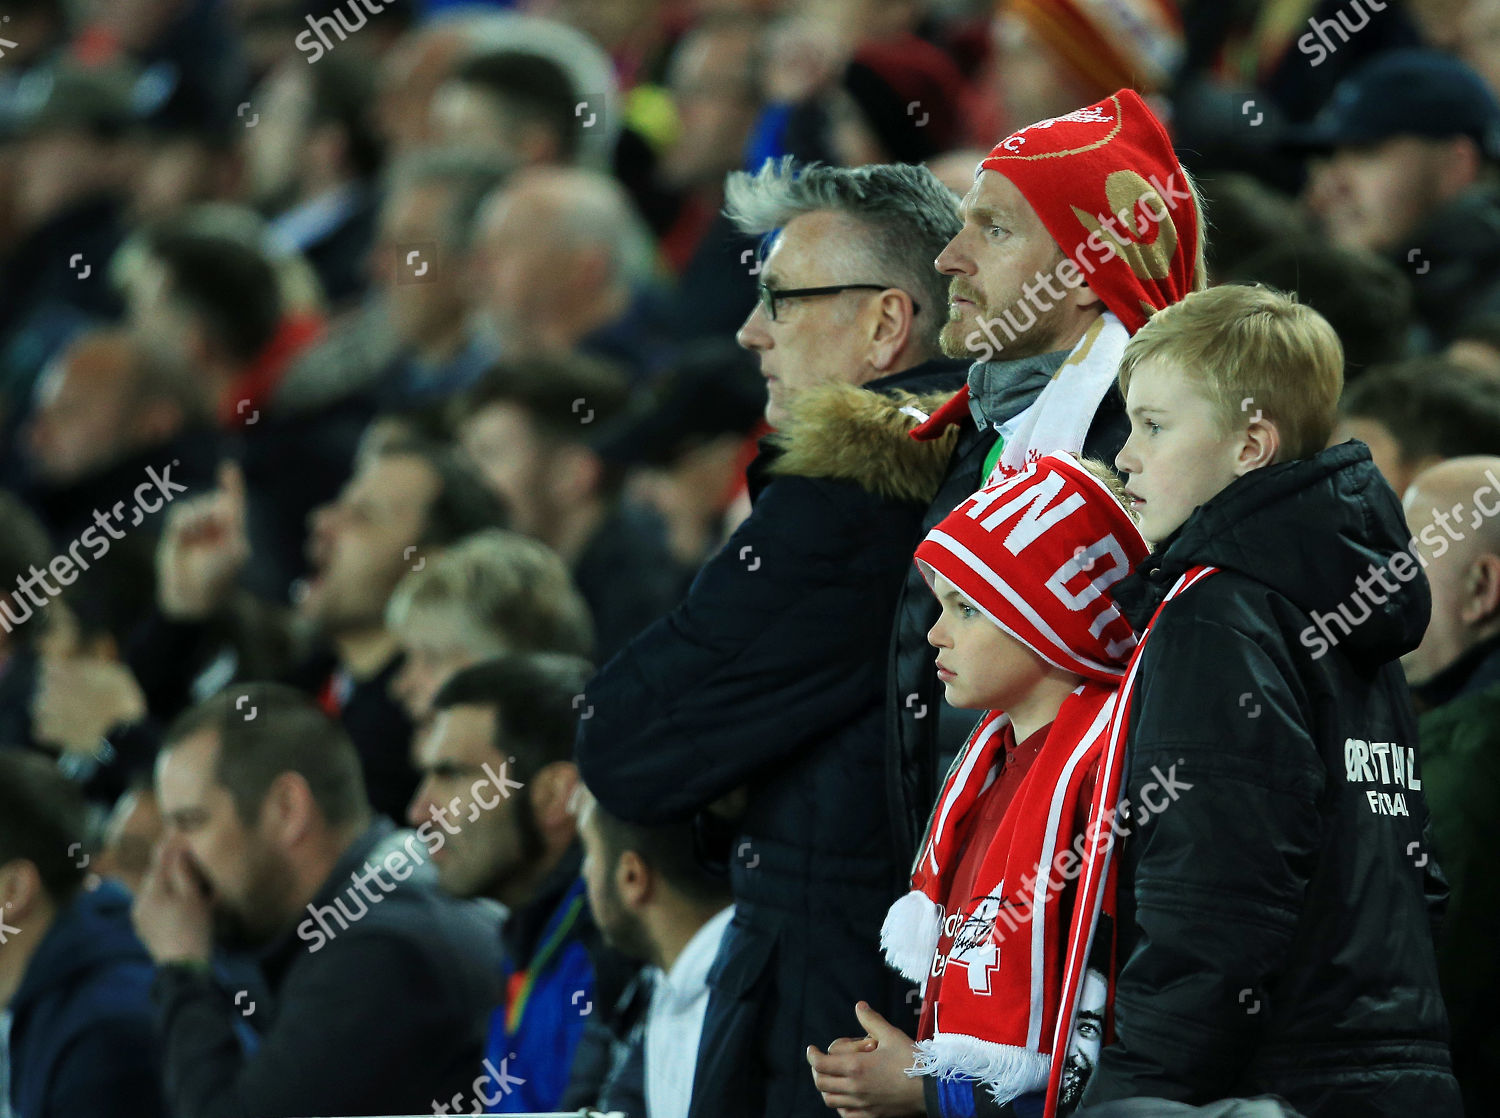 Liverpool fans wearing scarves over their heads Editorial